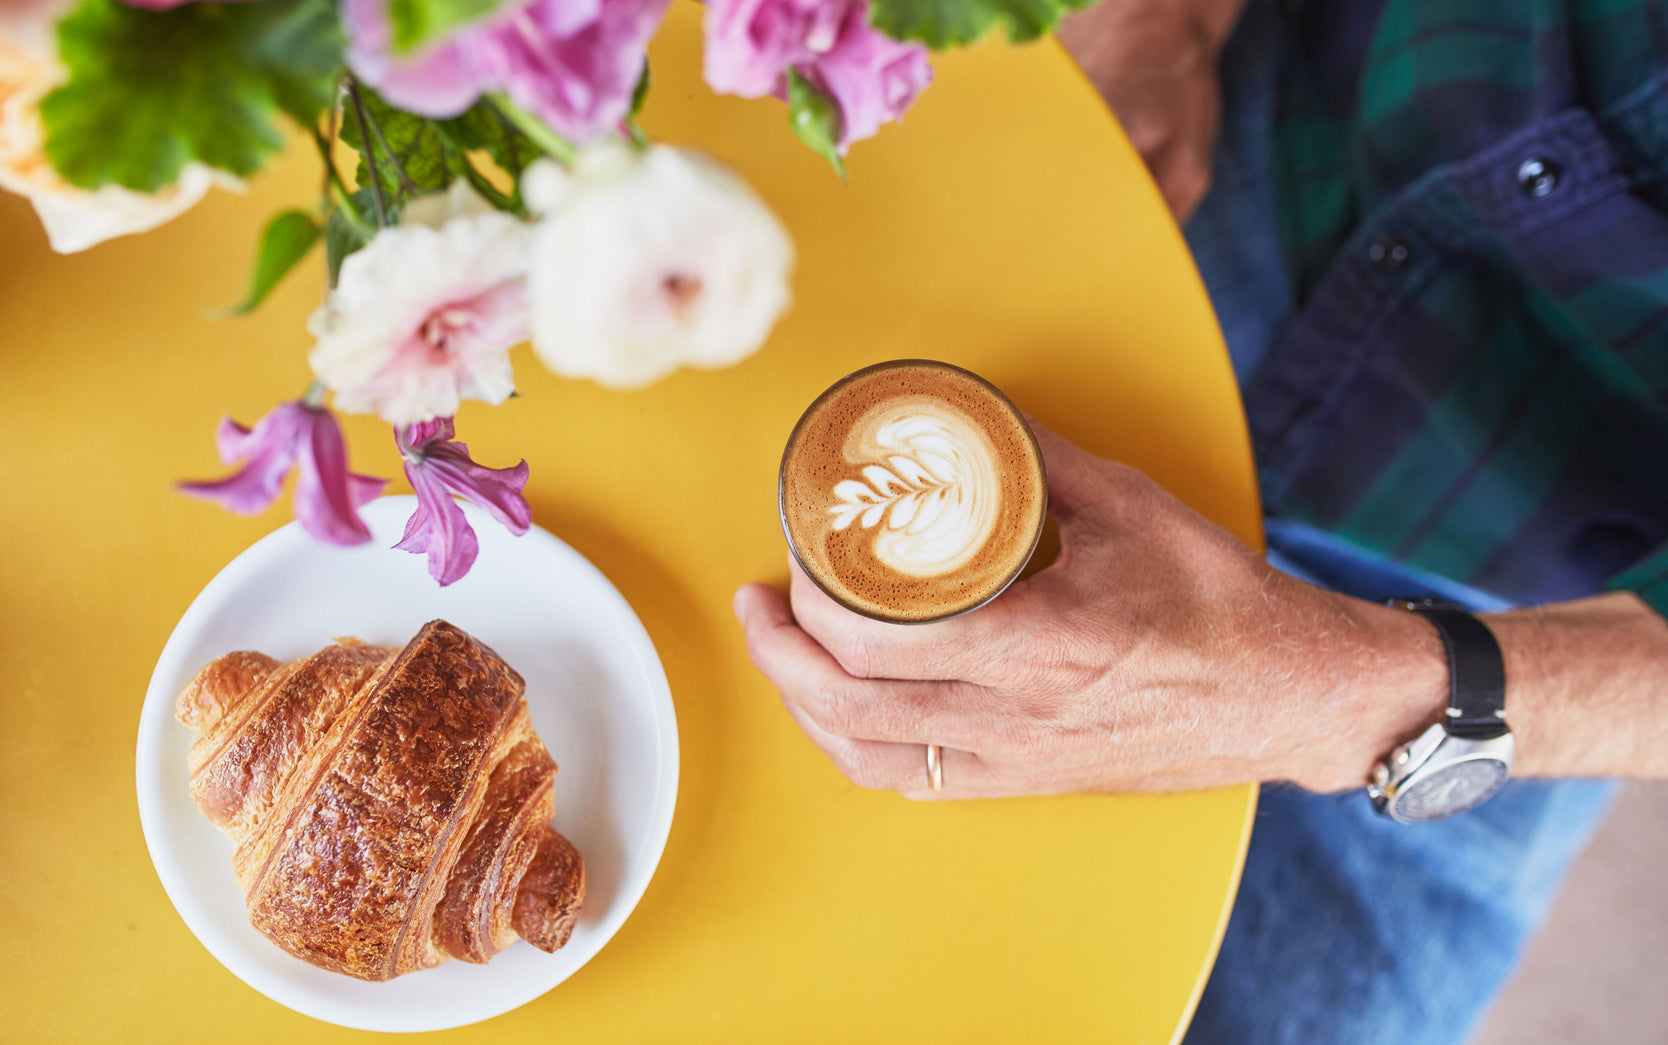 a person seated at a yellow table holding a gibraltar with rosetta latte art. a croissant on a plate sits at the table as well.